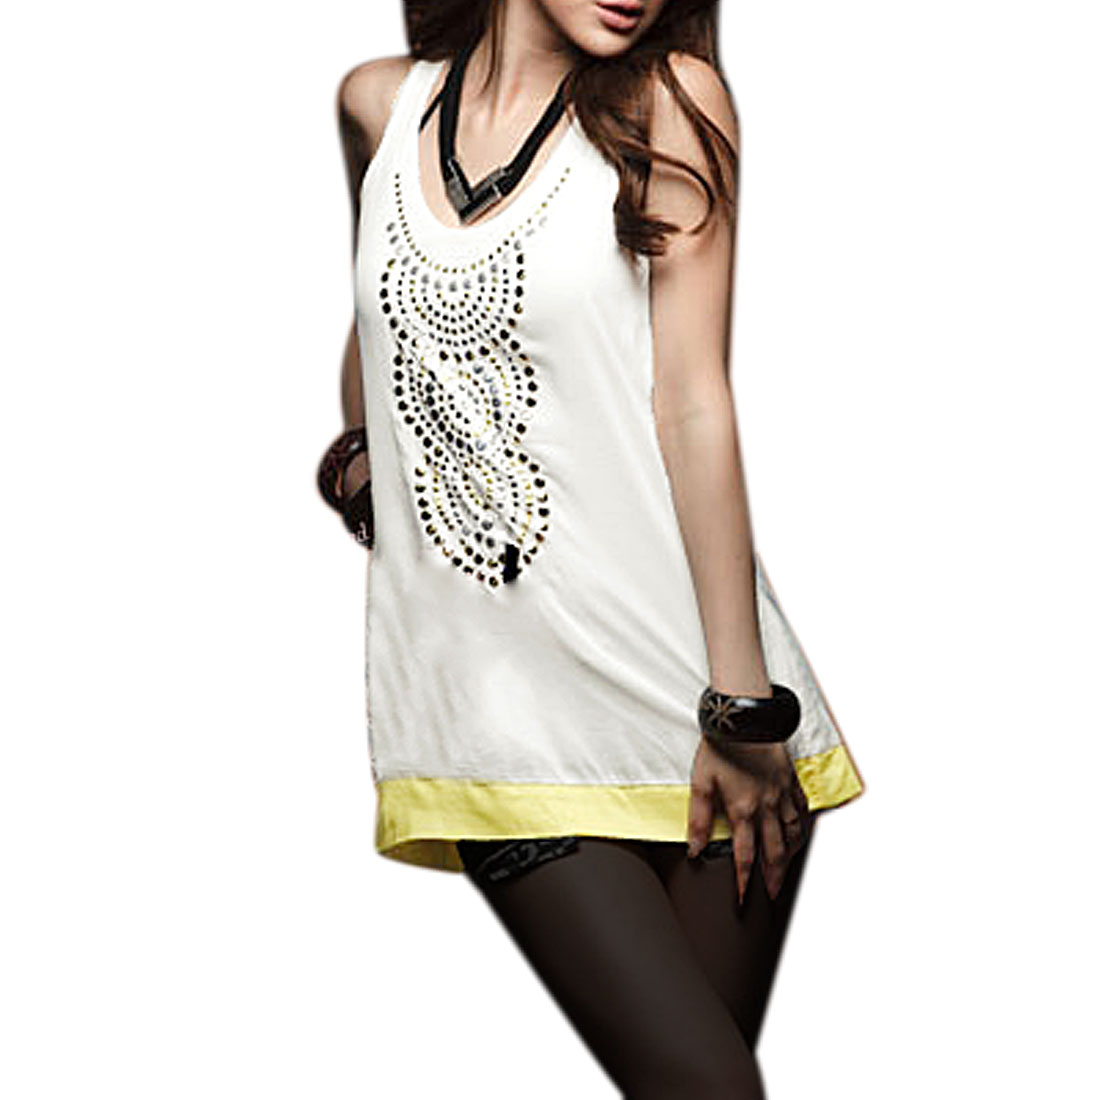 Ladies Scoop Neck Sleeveless Stud Decor White Yellow Tank Top XS